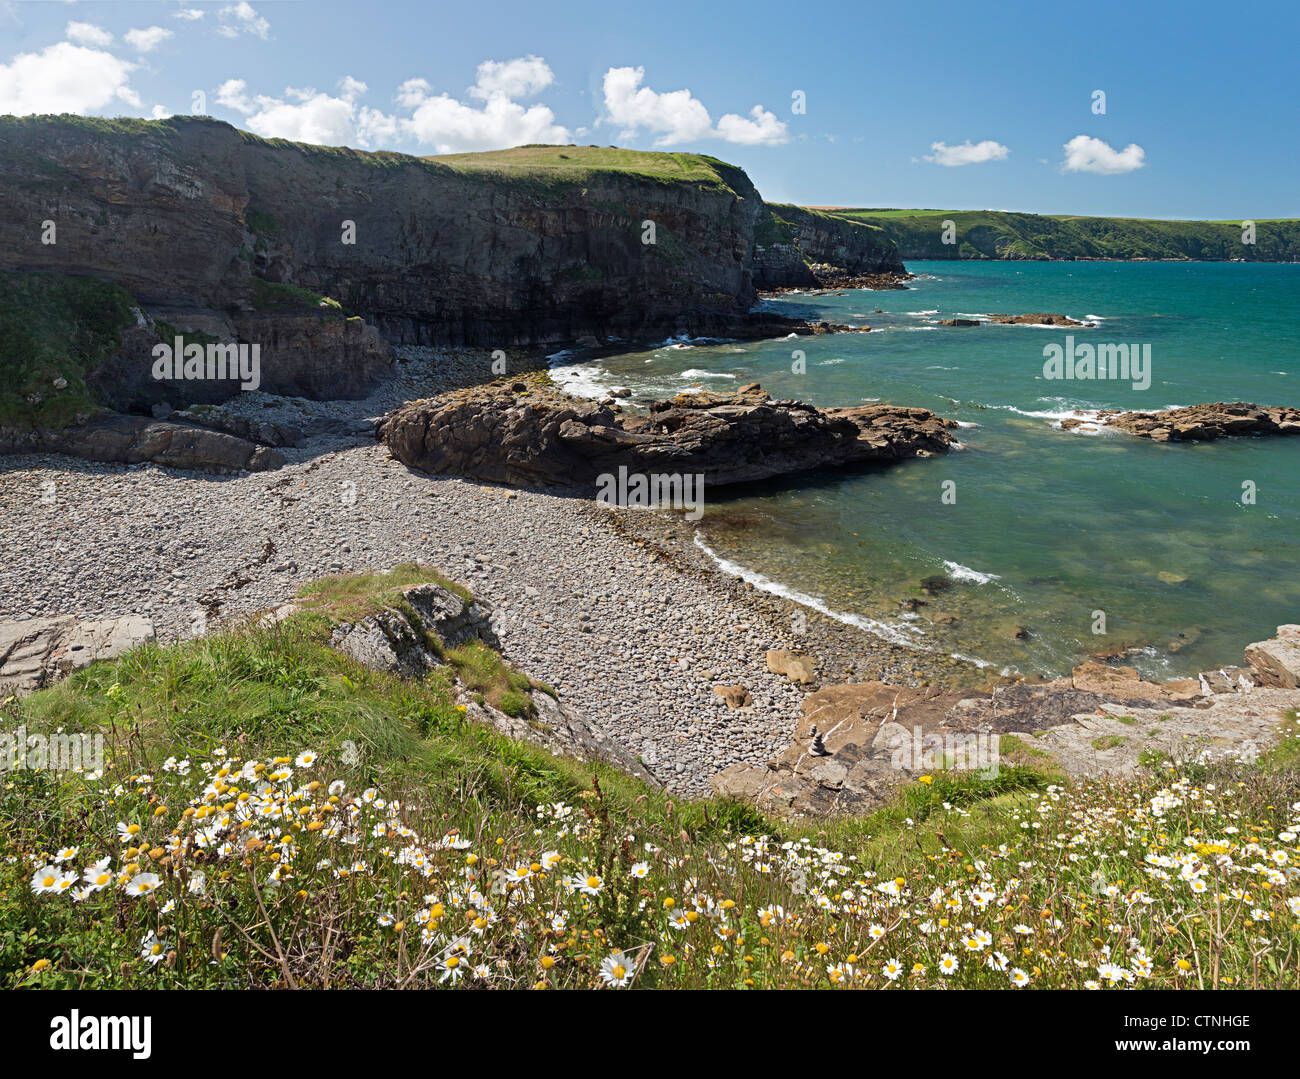 Stitched Panorama of Little Haven beach, Pembrokeshire, Wales - Stock Image